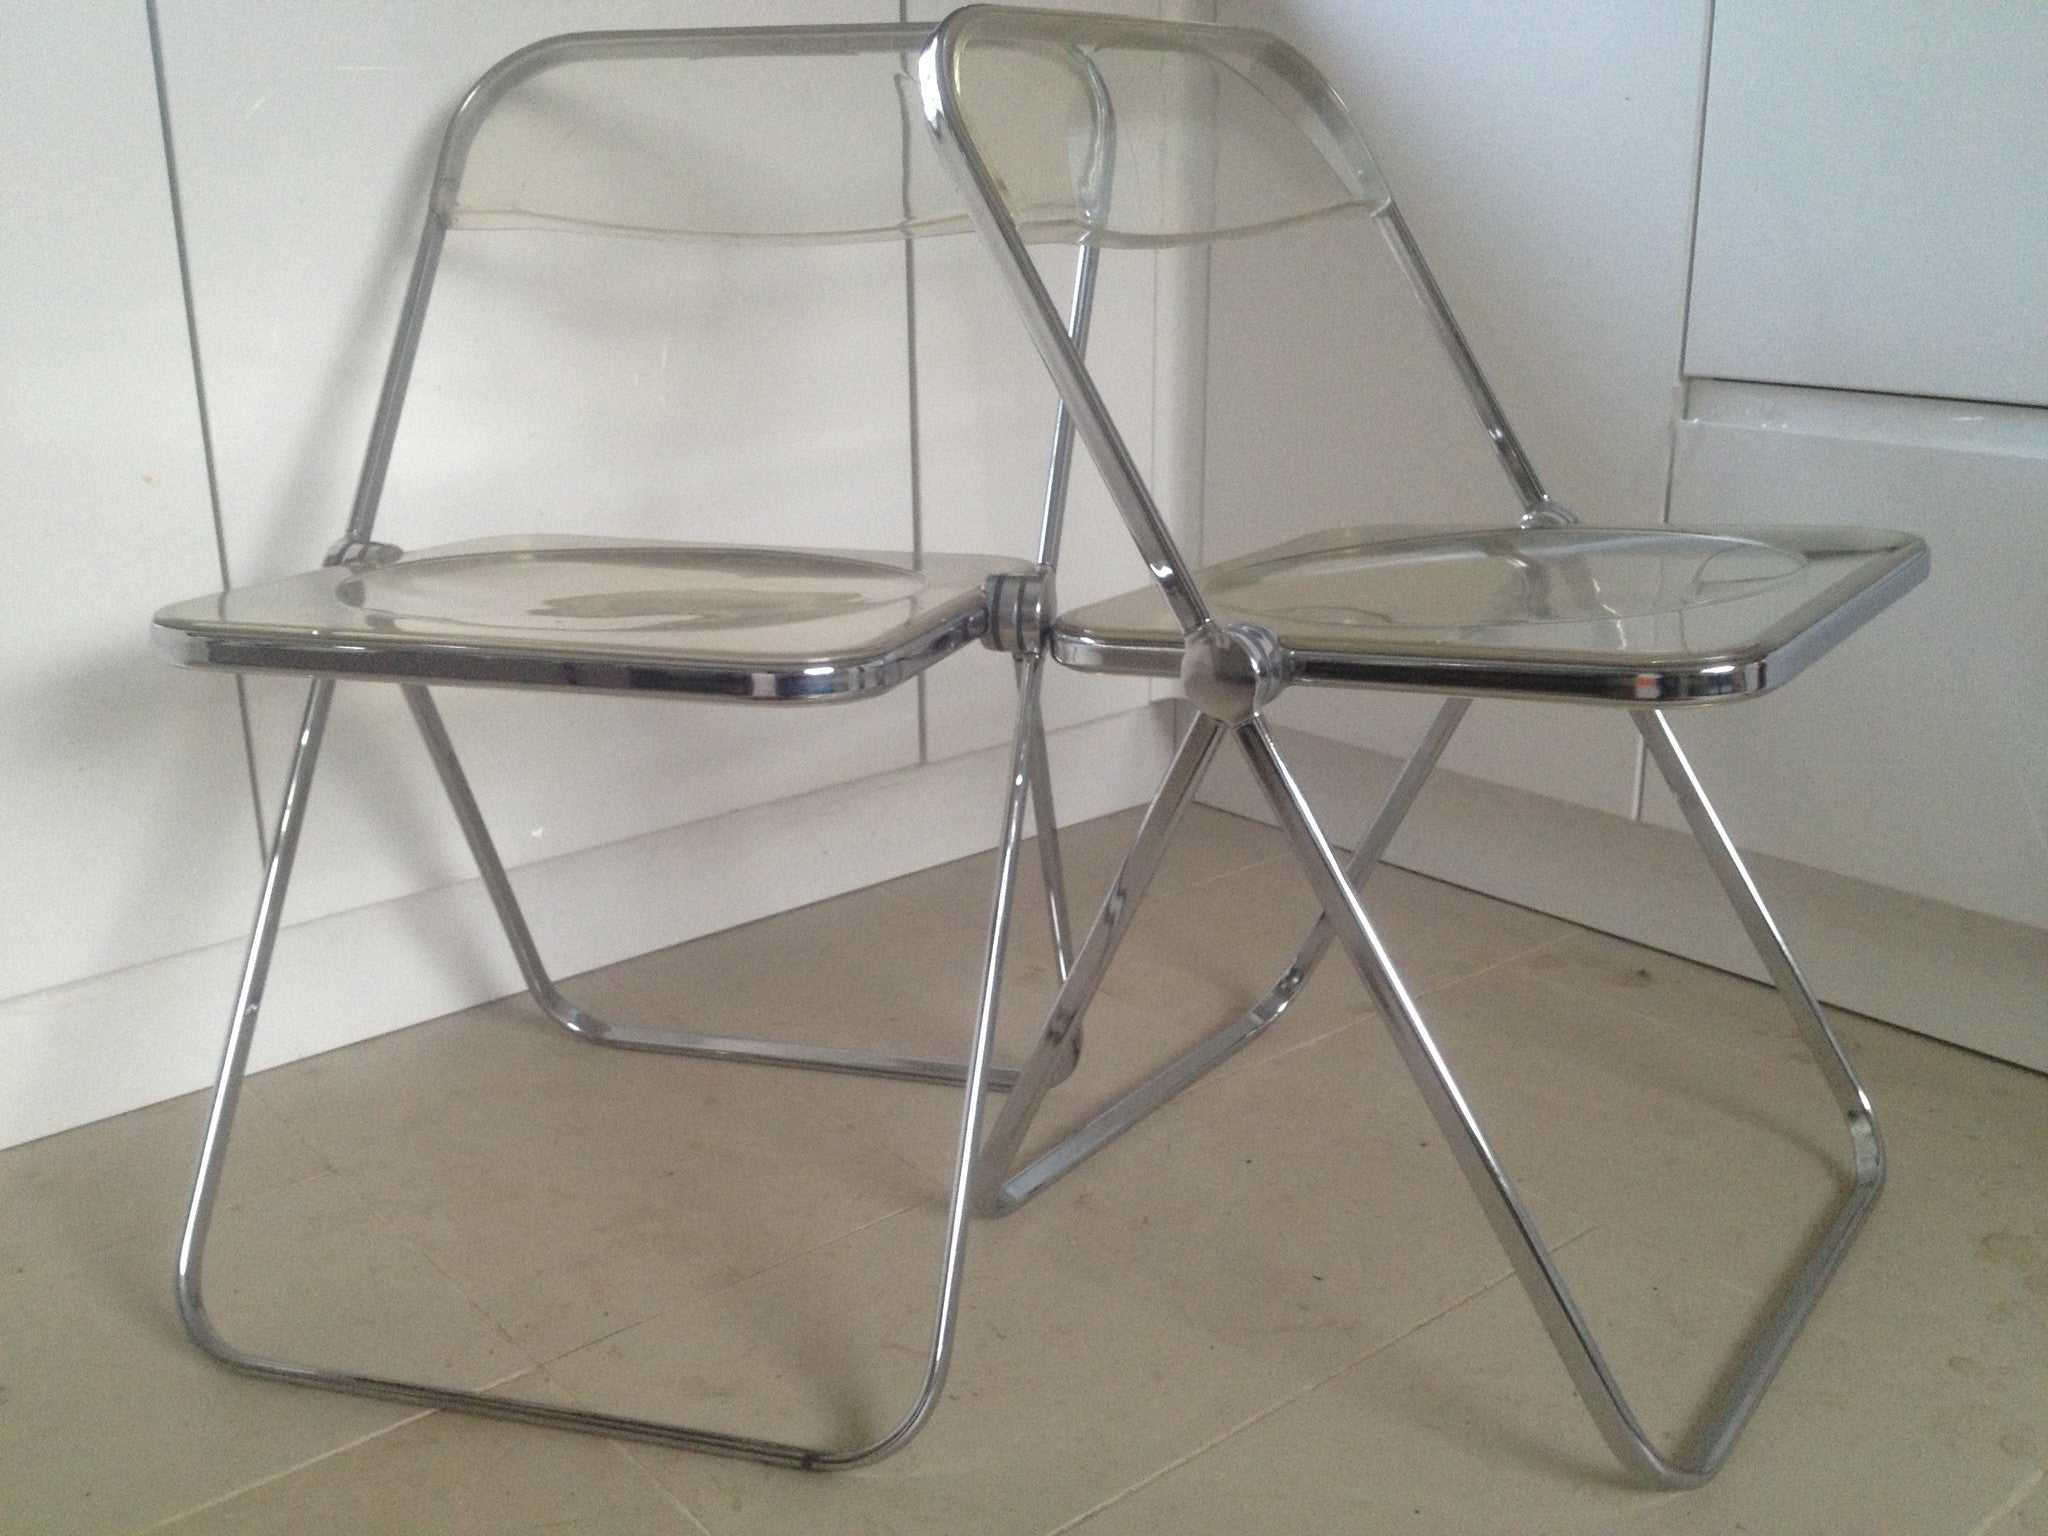 Pair Of Plia Folding Chairs In Chrome And Acrylic By Giancarlo Piretti For  Anonima Castelli Of